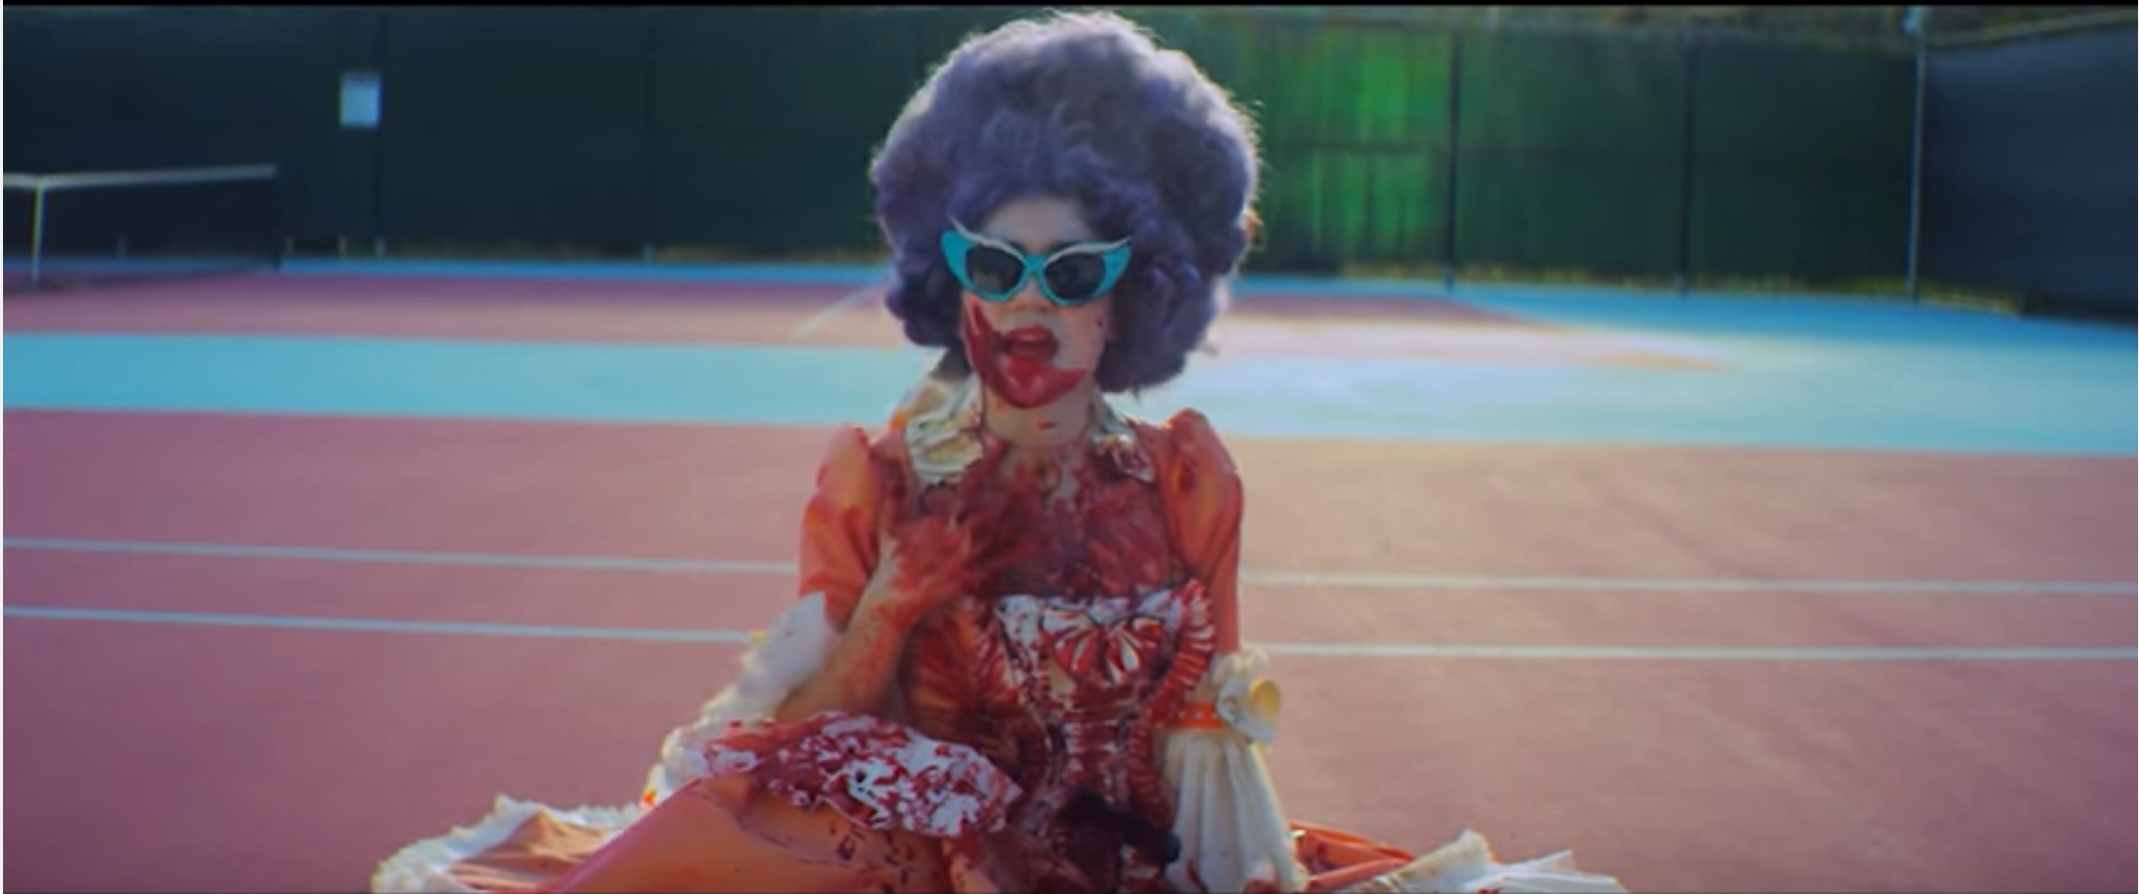 Watch The New Grimes Video From Her Coming Album 'Art Angels'